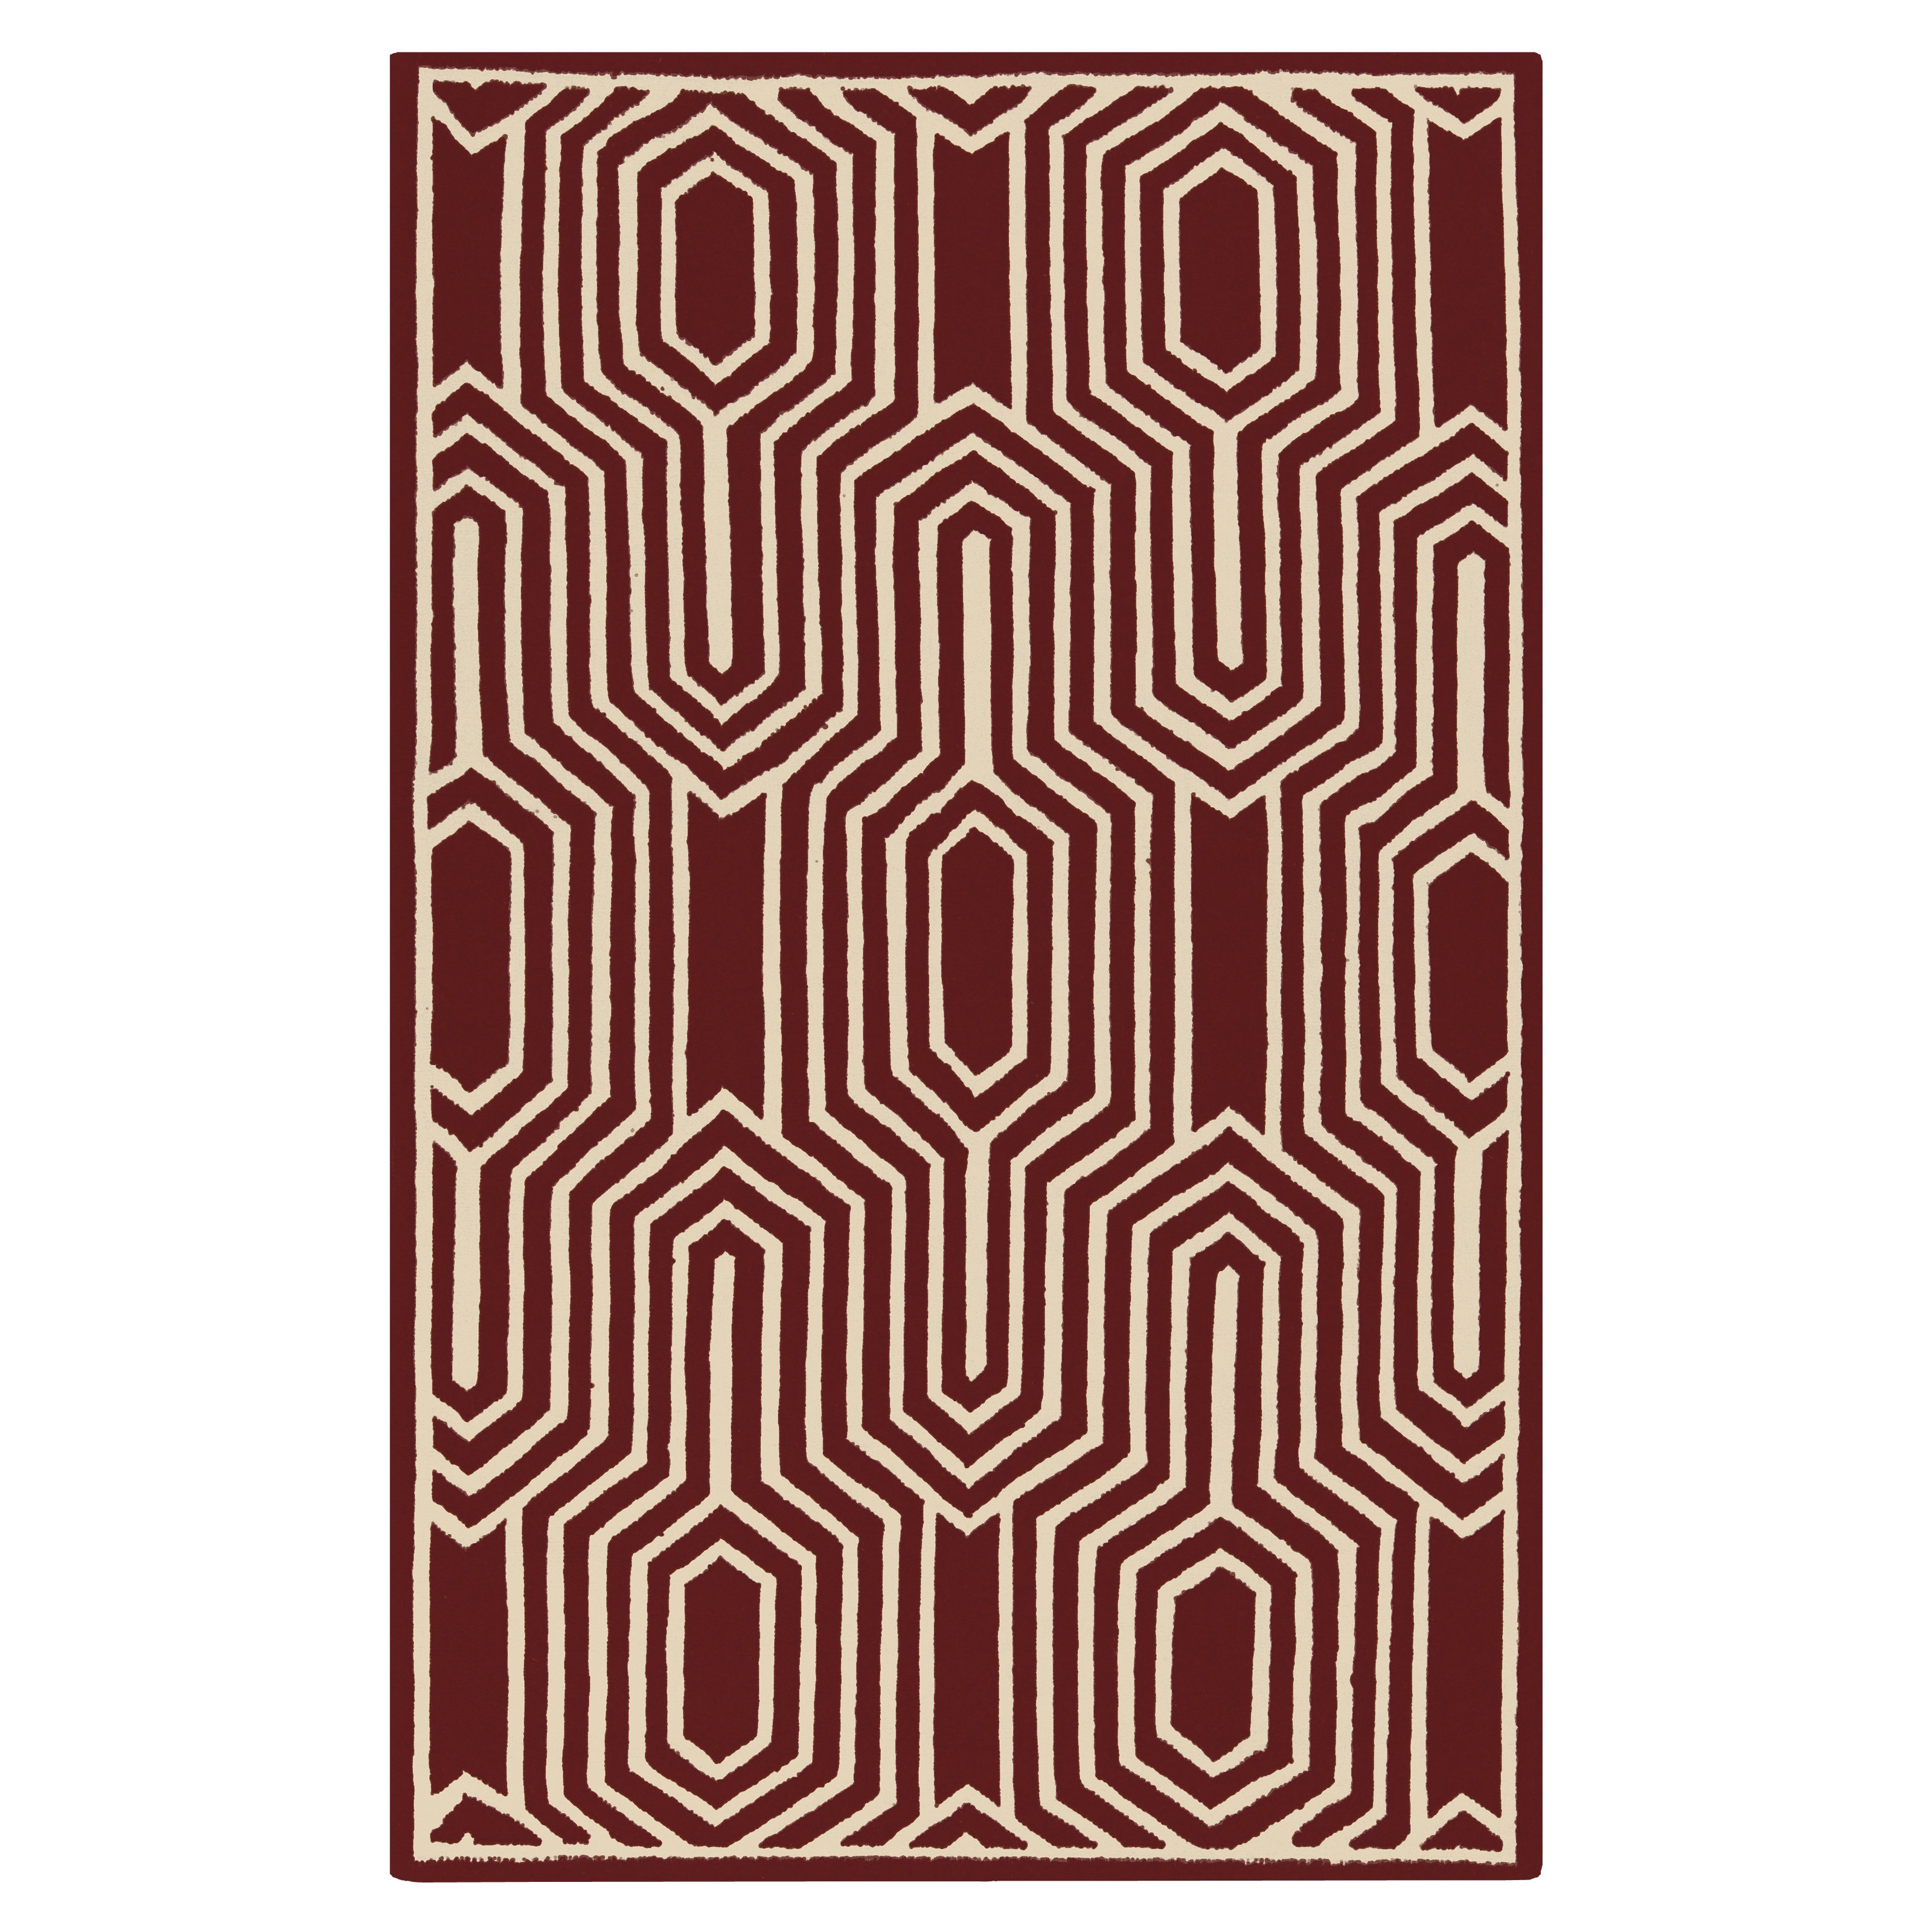 Surya Frontier Retro Transitional Area Rug